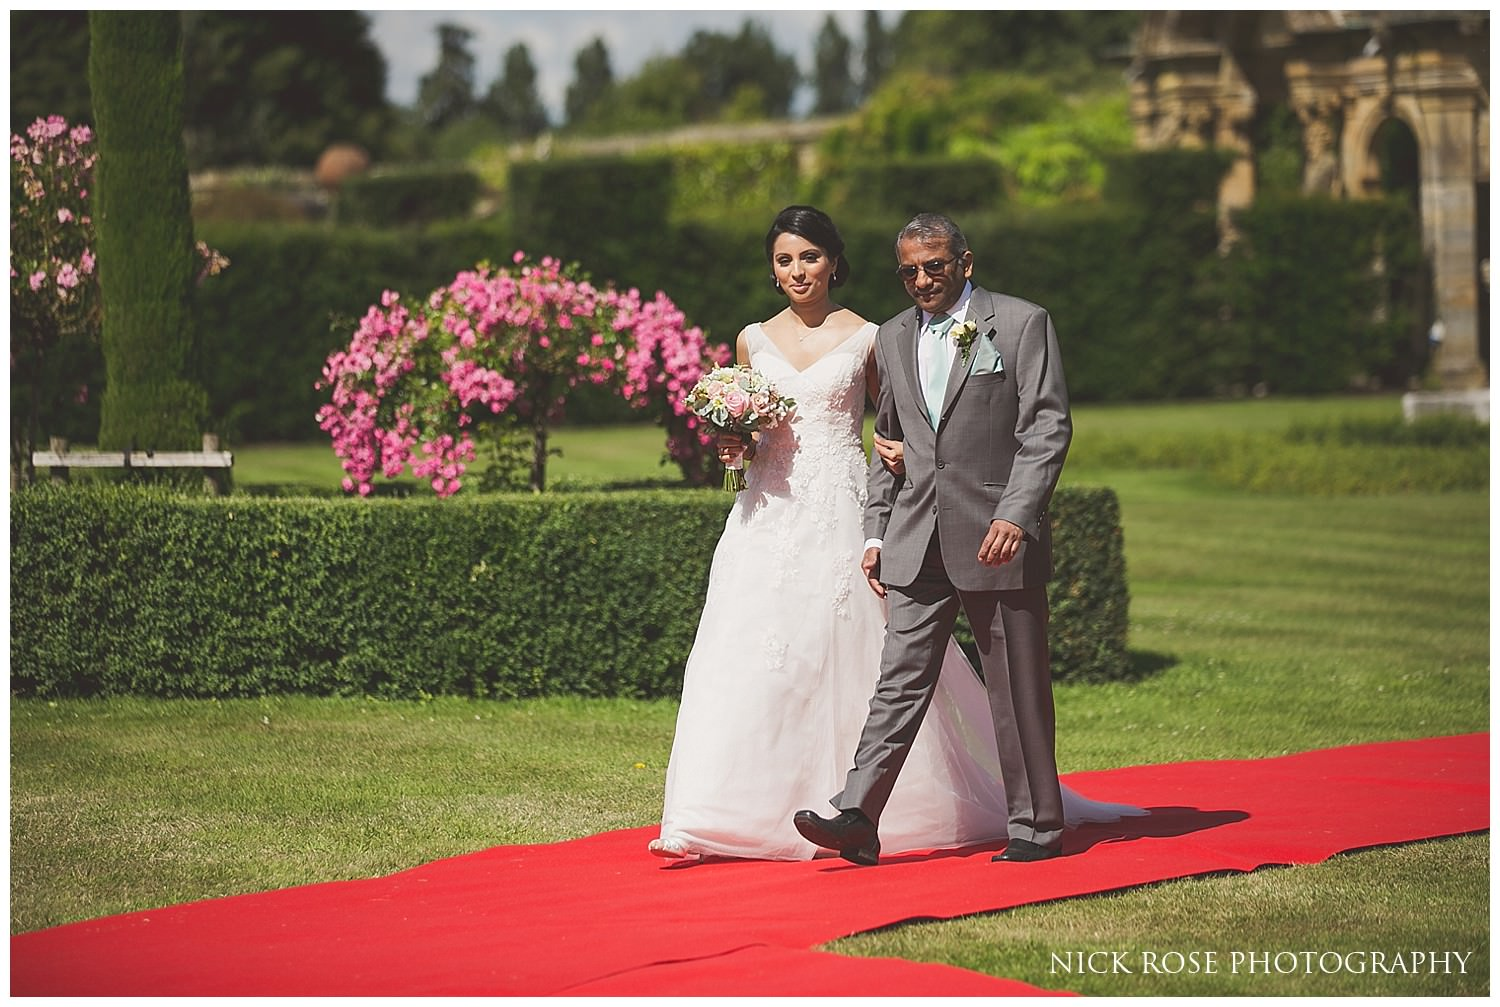 Father of the bride walking daughter up the red carpet aisle at hever castle